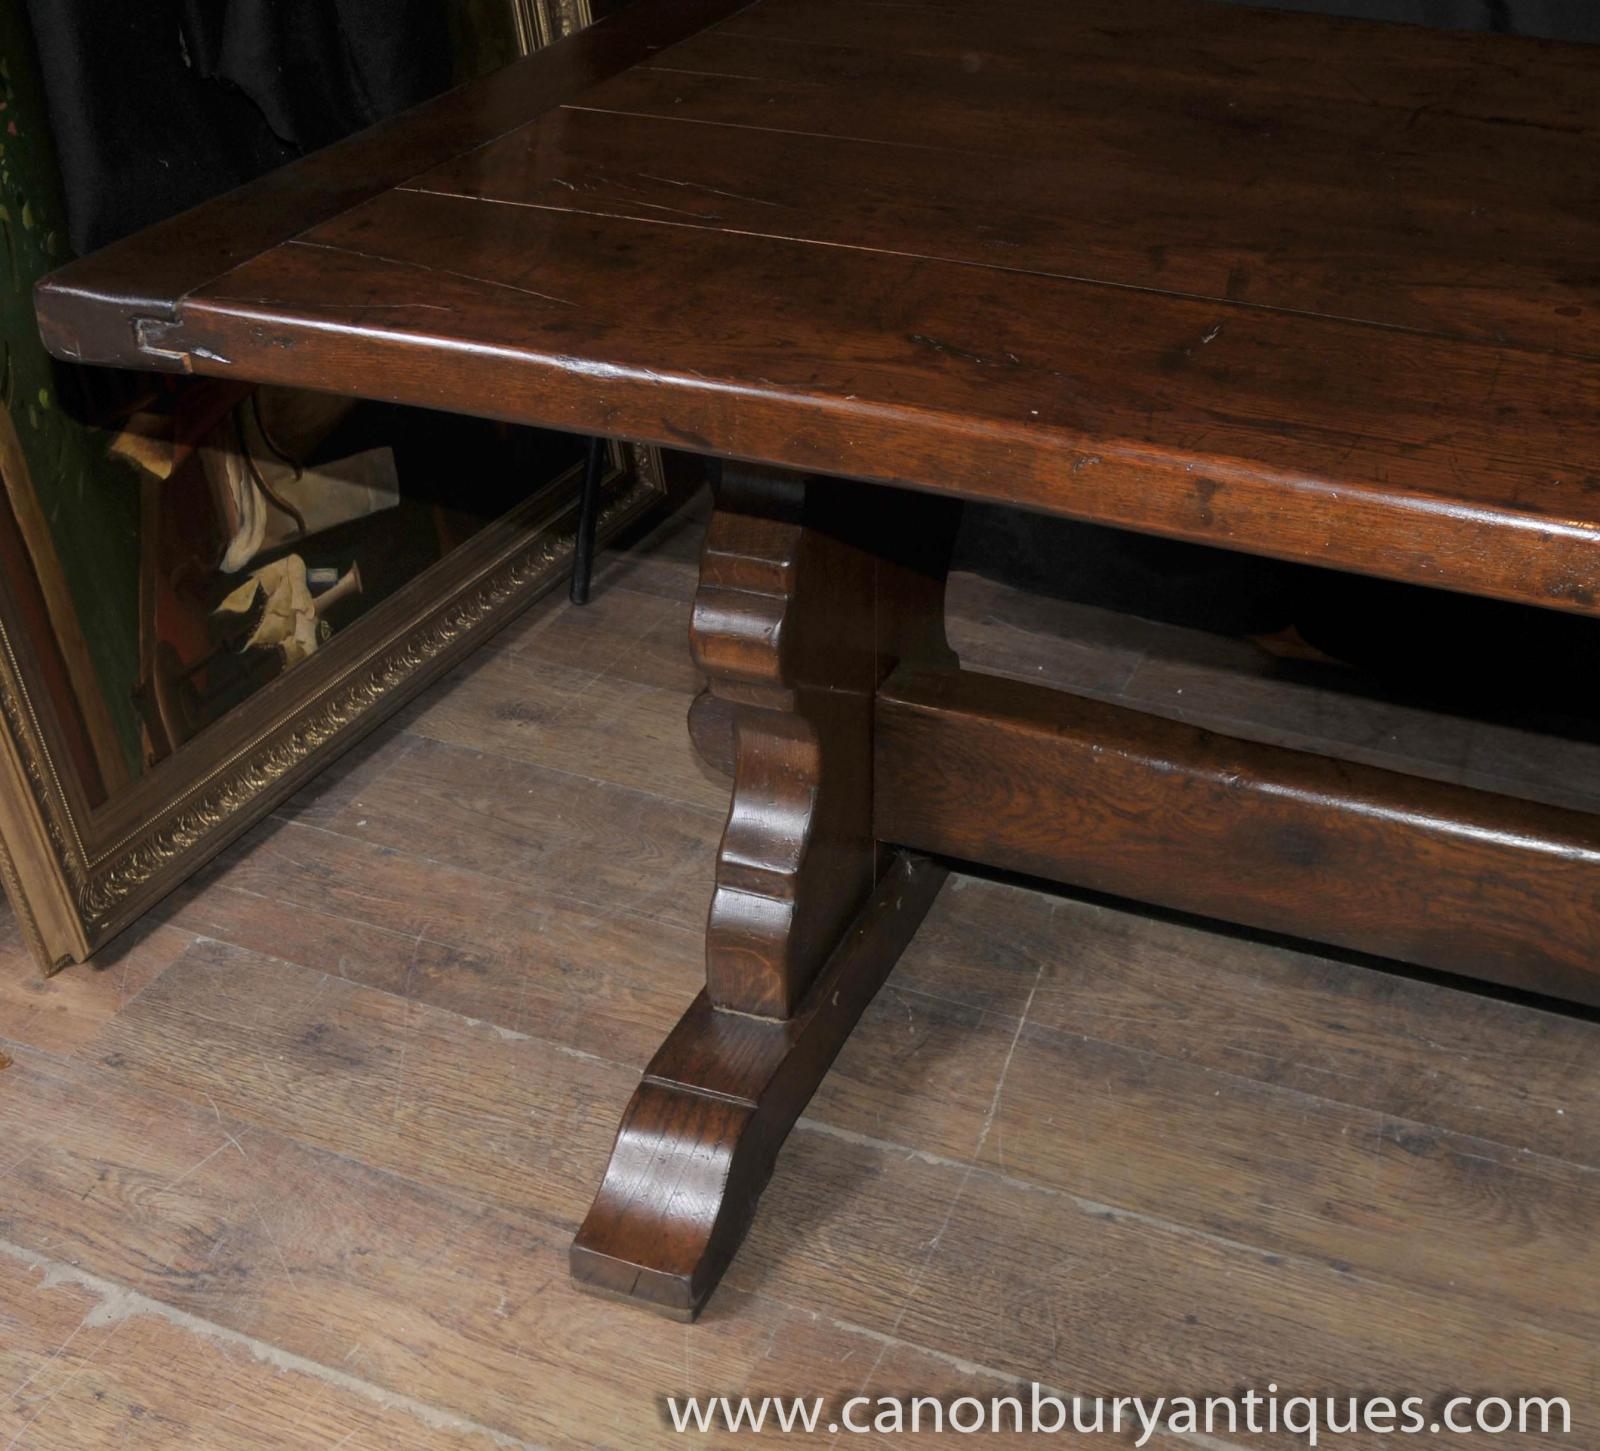 Very Best Photo of Oak Refectory Table Kitchen Dining Tables Farmhouse Furniture 1600 x 1451 · 230 kB · jpeg